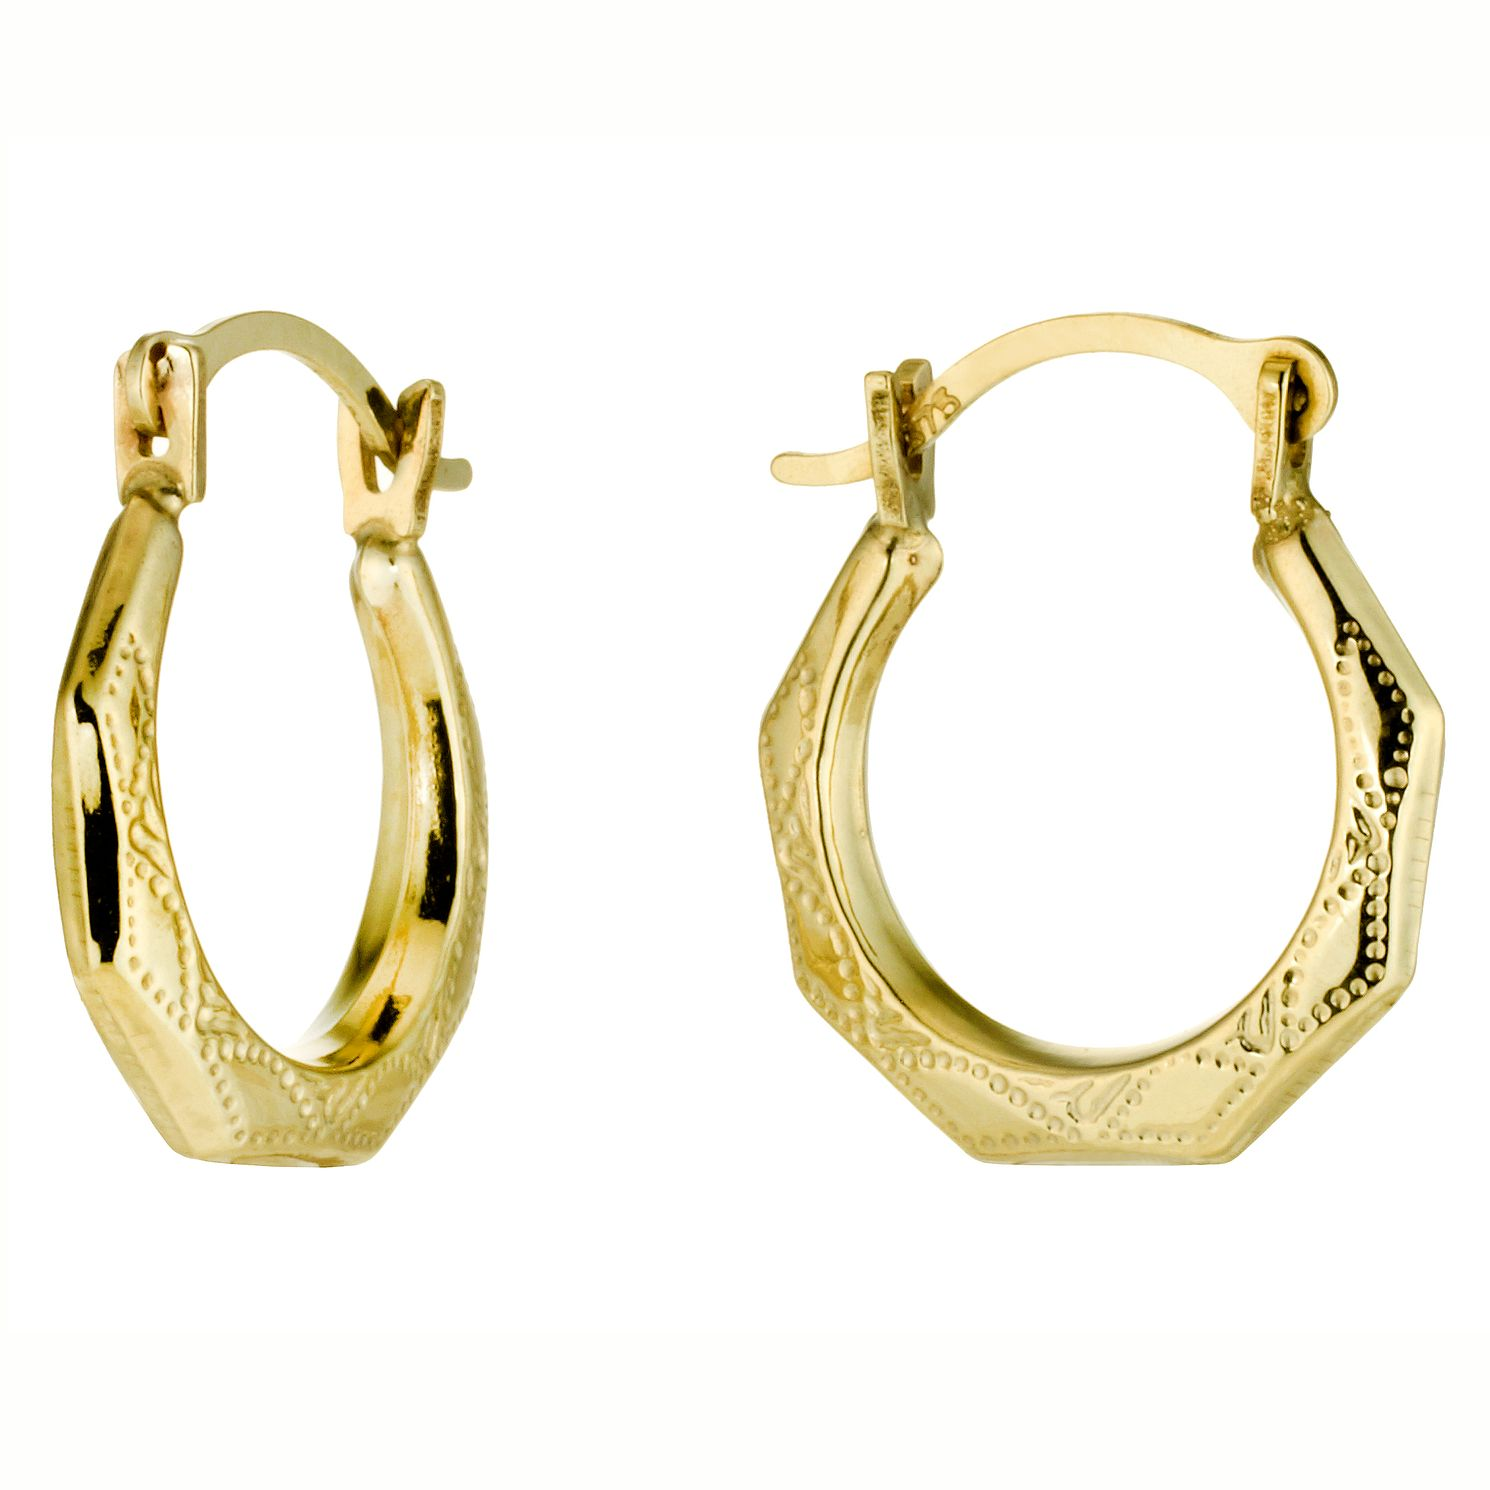 9ct Yellow Gold Octagon 8mm Hoop Earrings - Product number 4878299